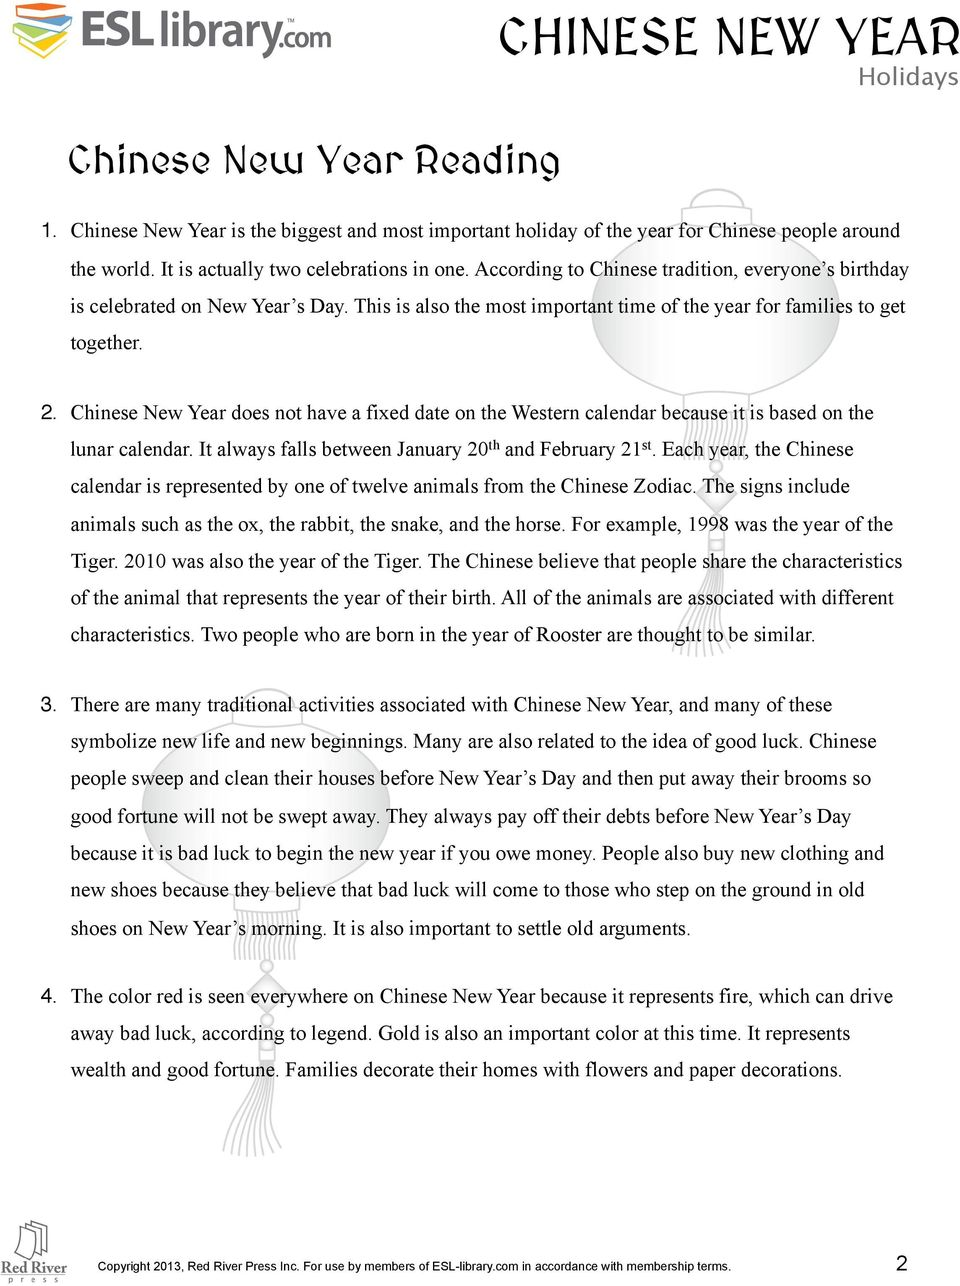 medium resolution of INTERMEDIATE LEVEL CHINESE NEW YEAR LESSON PLAN - PDF Free Download